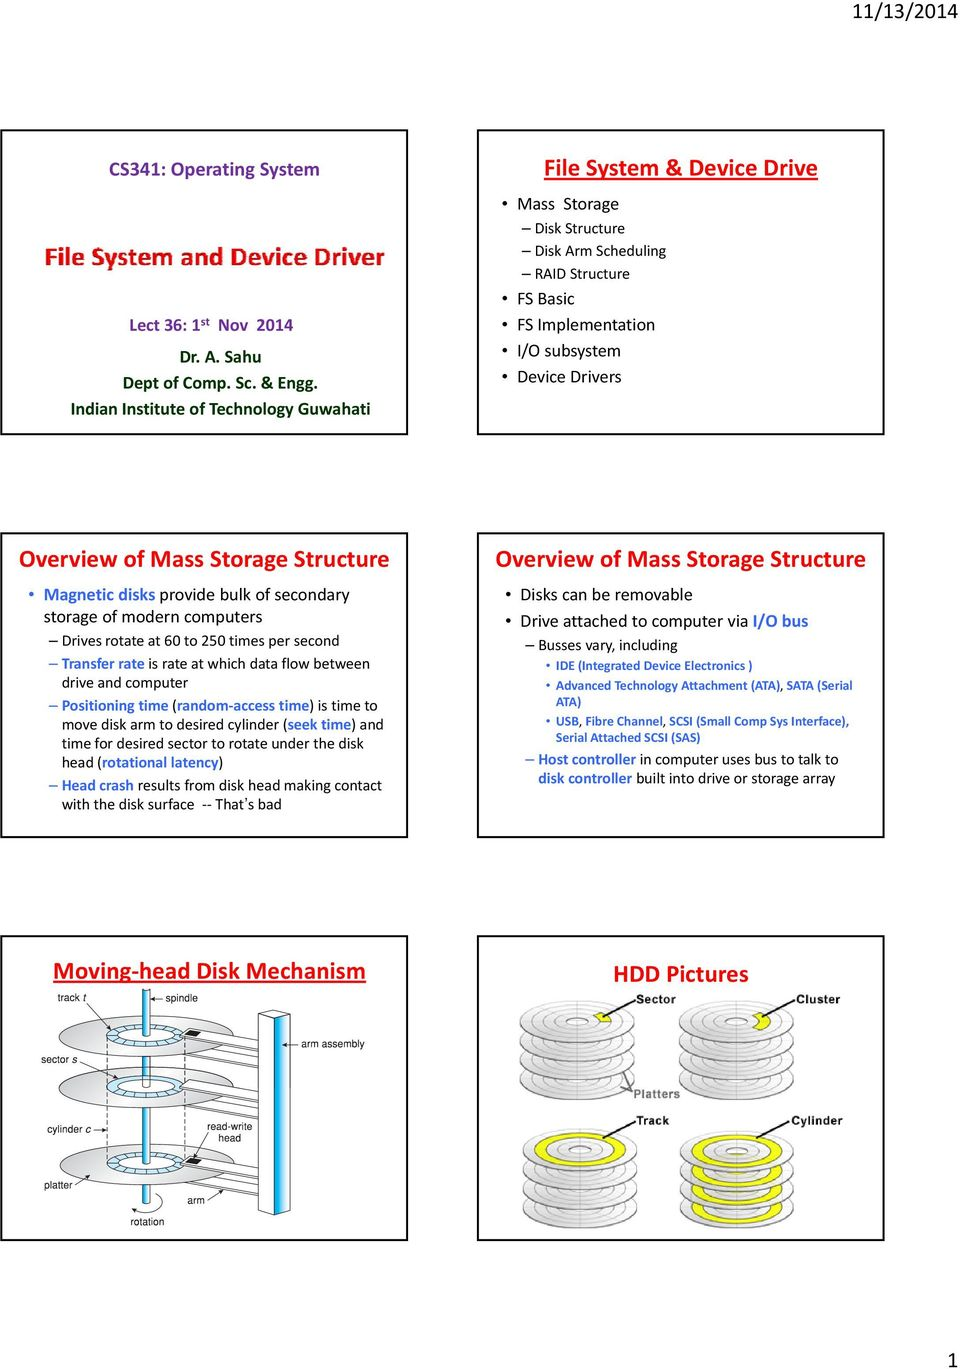 Mass Storage Structure Magnetic disks provide bulk of secondary storage of modern computers Drives rotate at 60 to 250 times per second Transfer rate is rate at which data flow between drive and